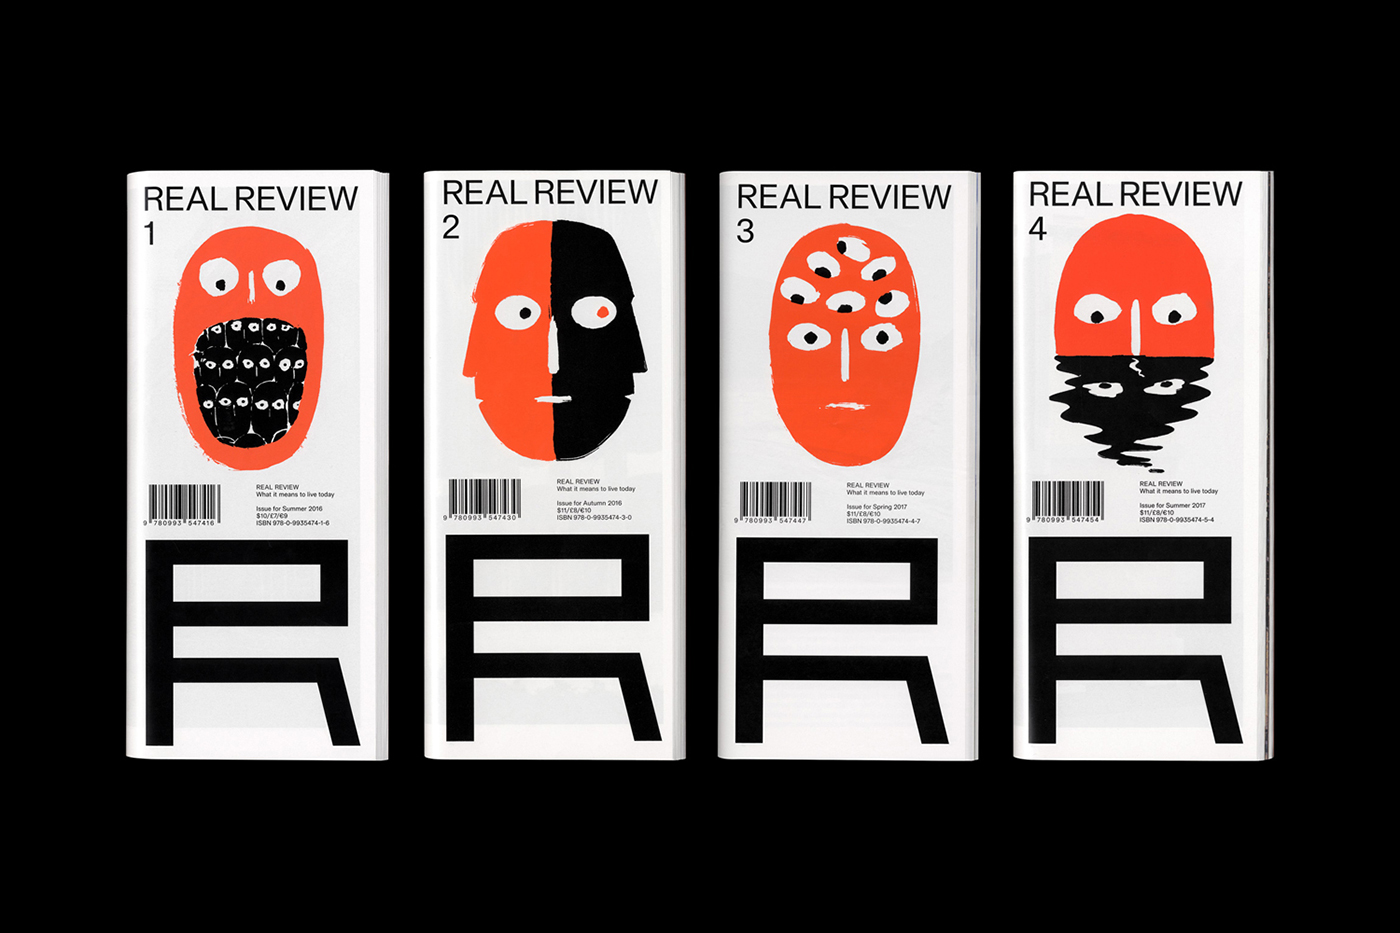 Real Review Magazine